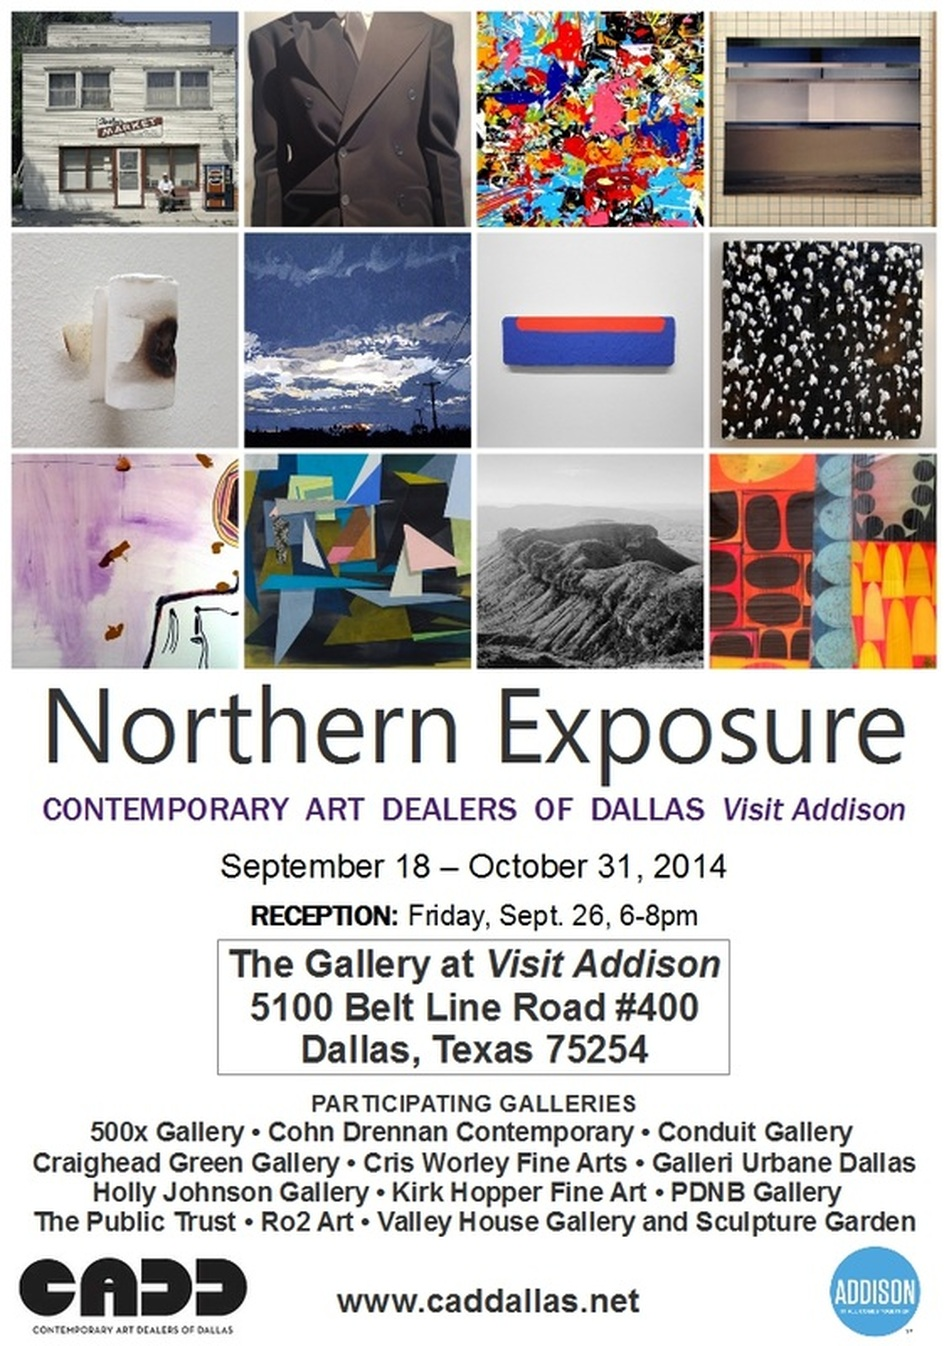 Northern Exposure: Contemporary Art Dealers of Dallas Visit Addison - Sept 18 thru Oct 31, 2014